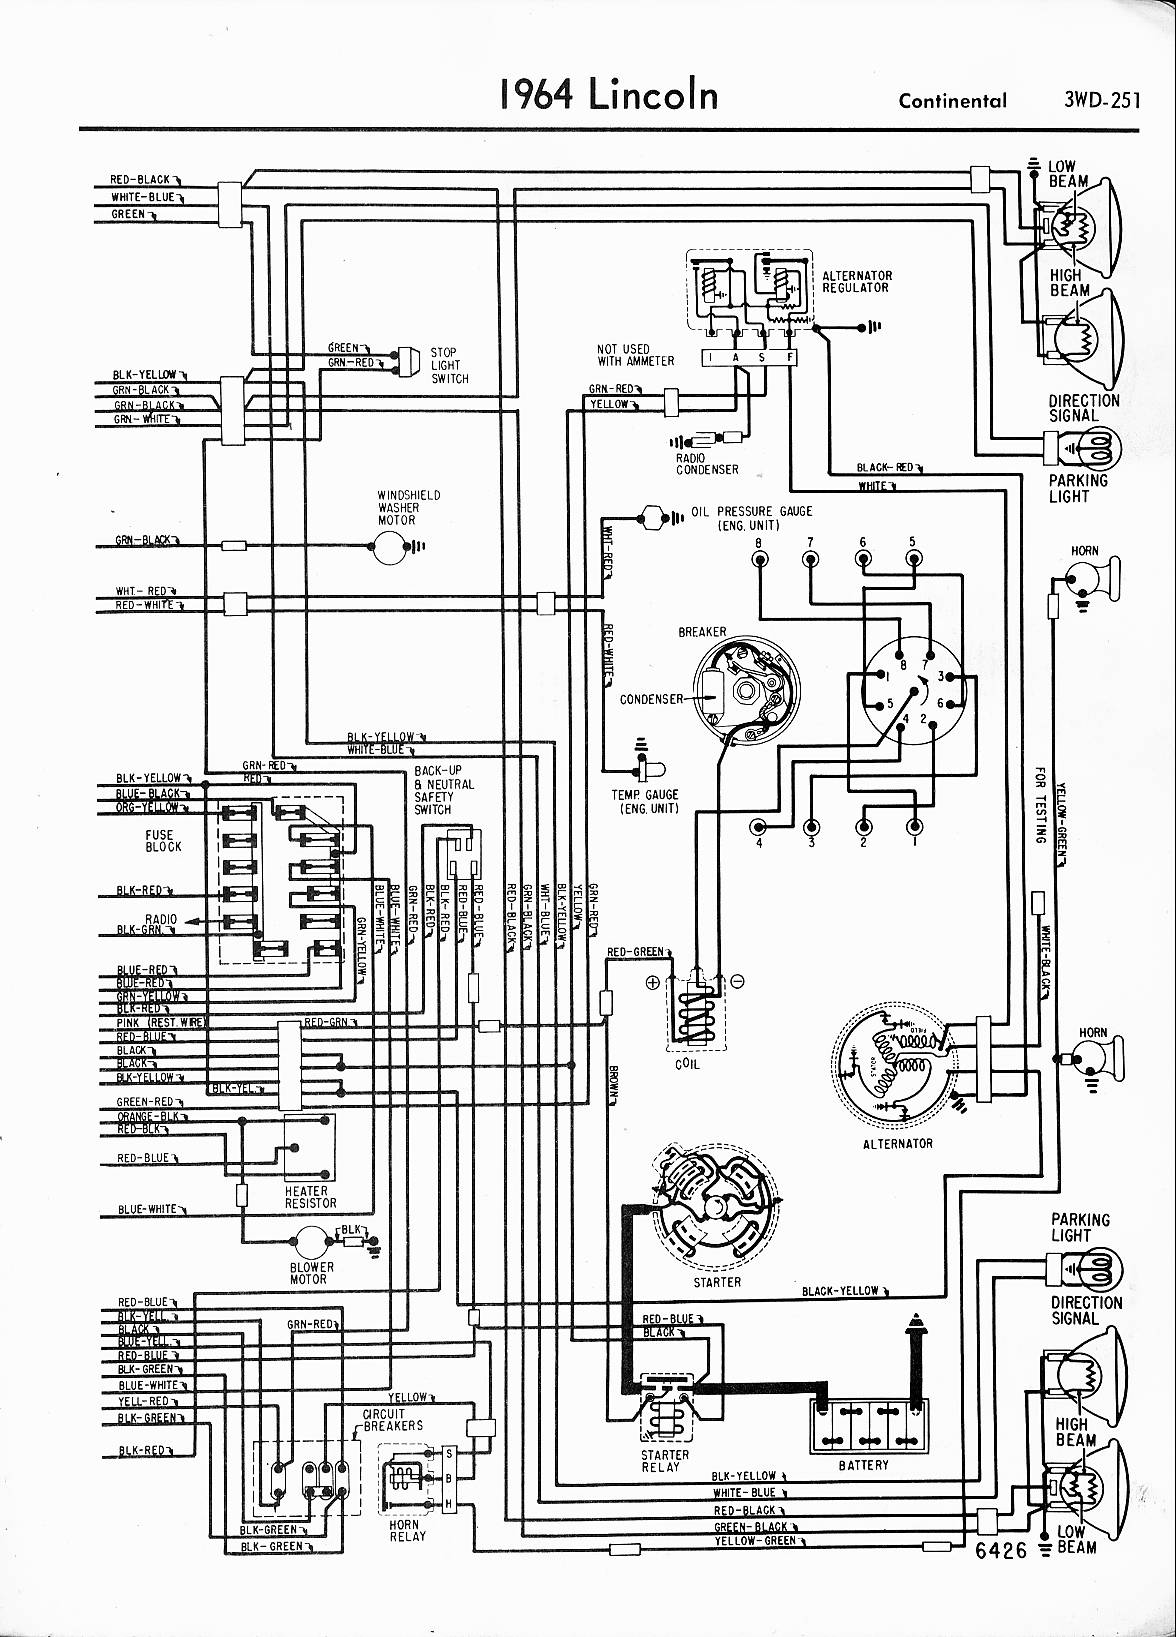 1964 ford thunderbird wiring lincoln wiring diagrams 1957 1965